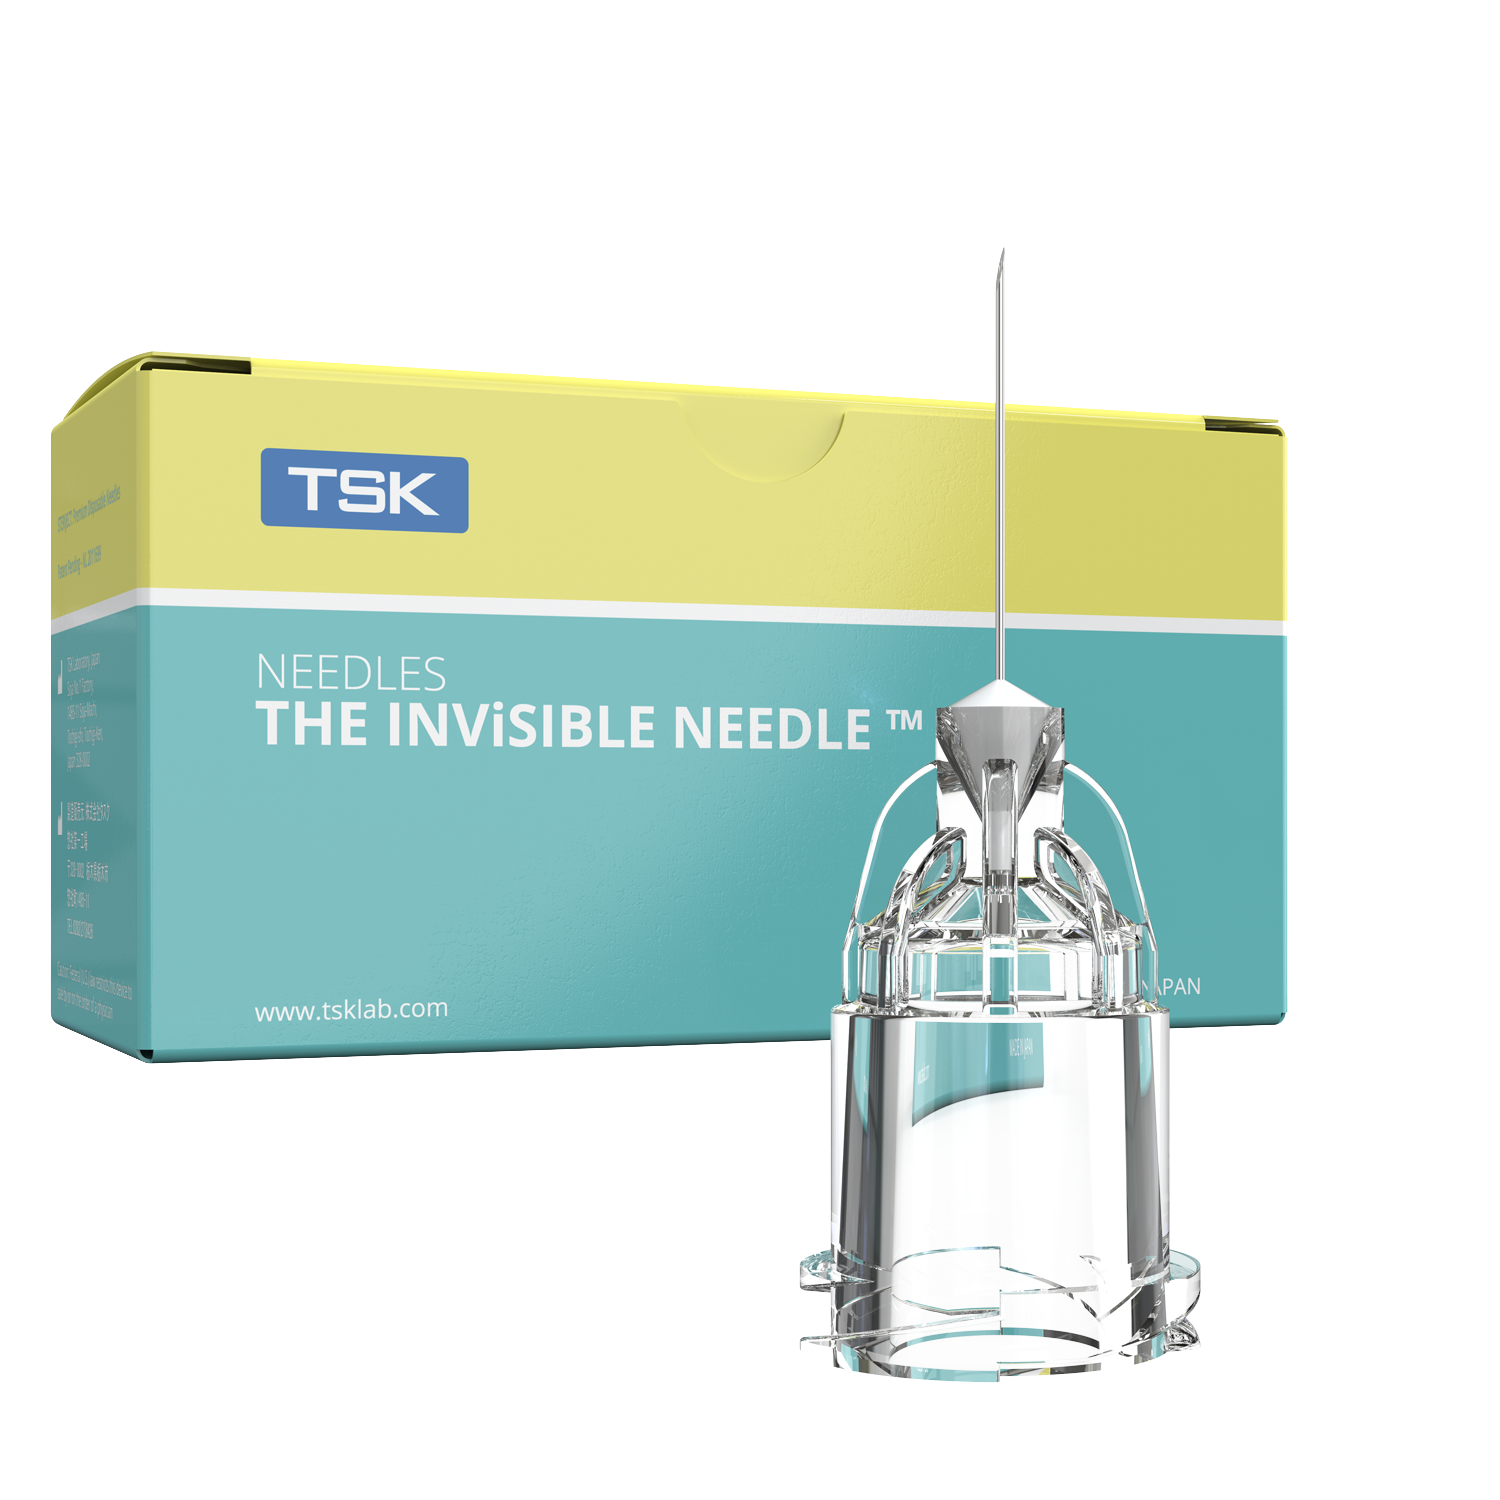 The-Invisible-Needle-main-1500